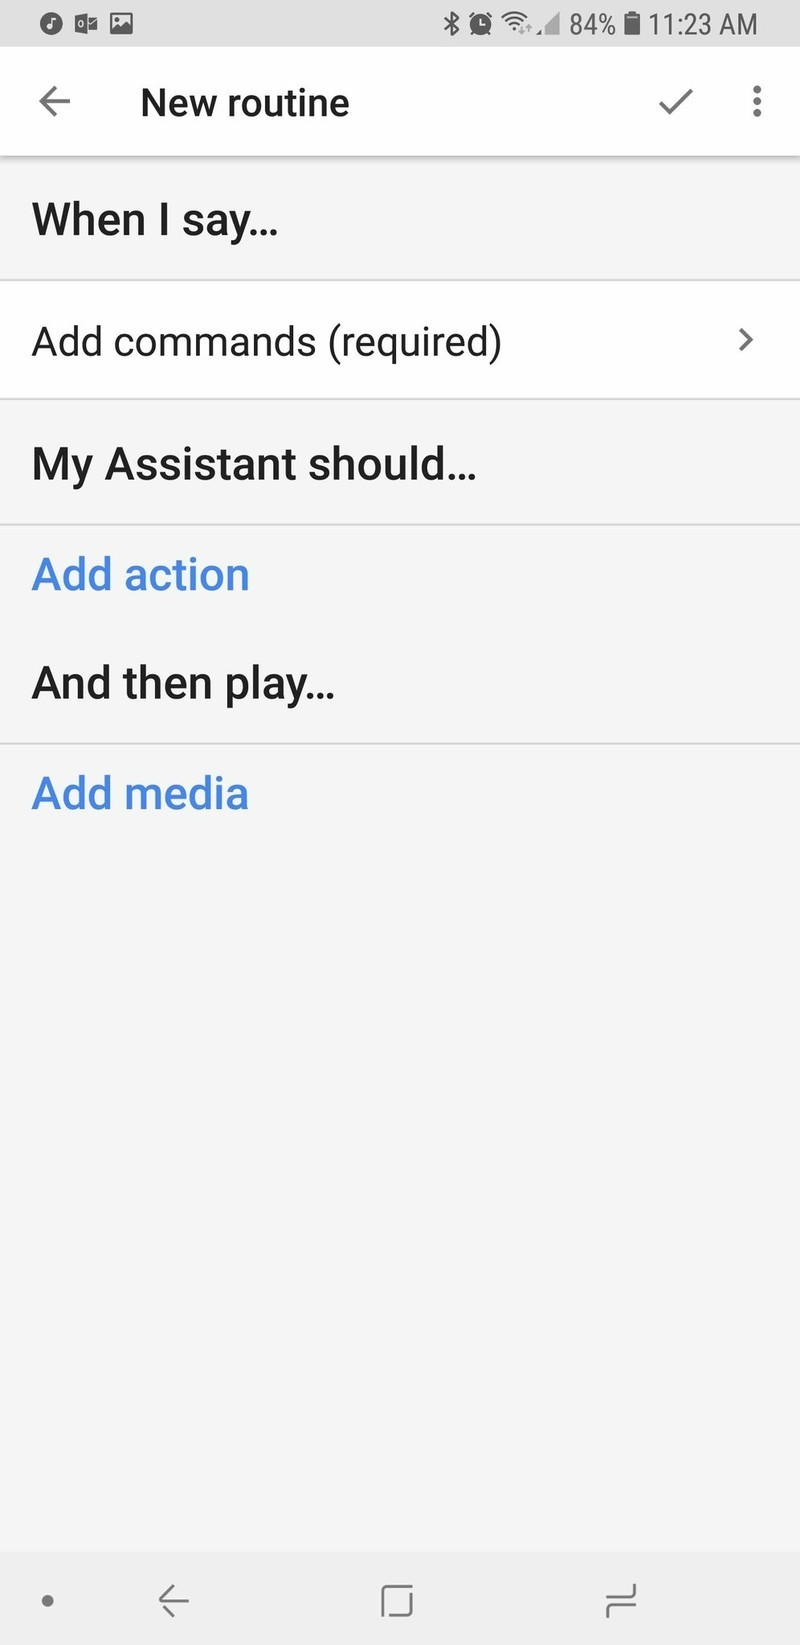 google-assistant-routine-1-empty.jpg?ito